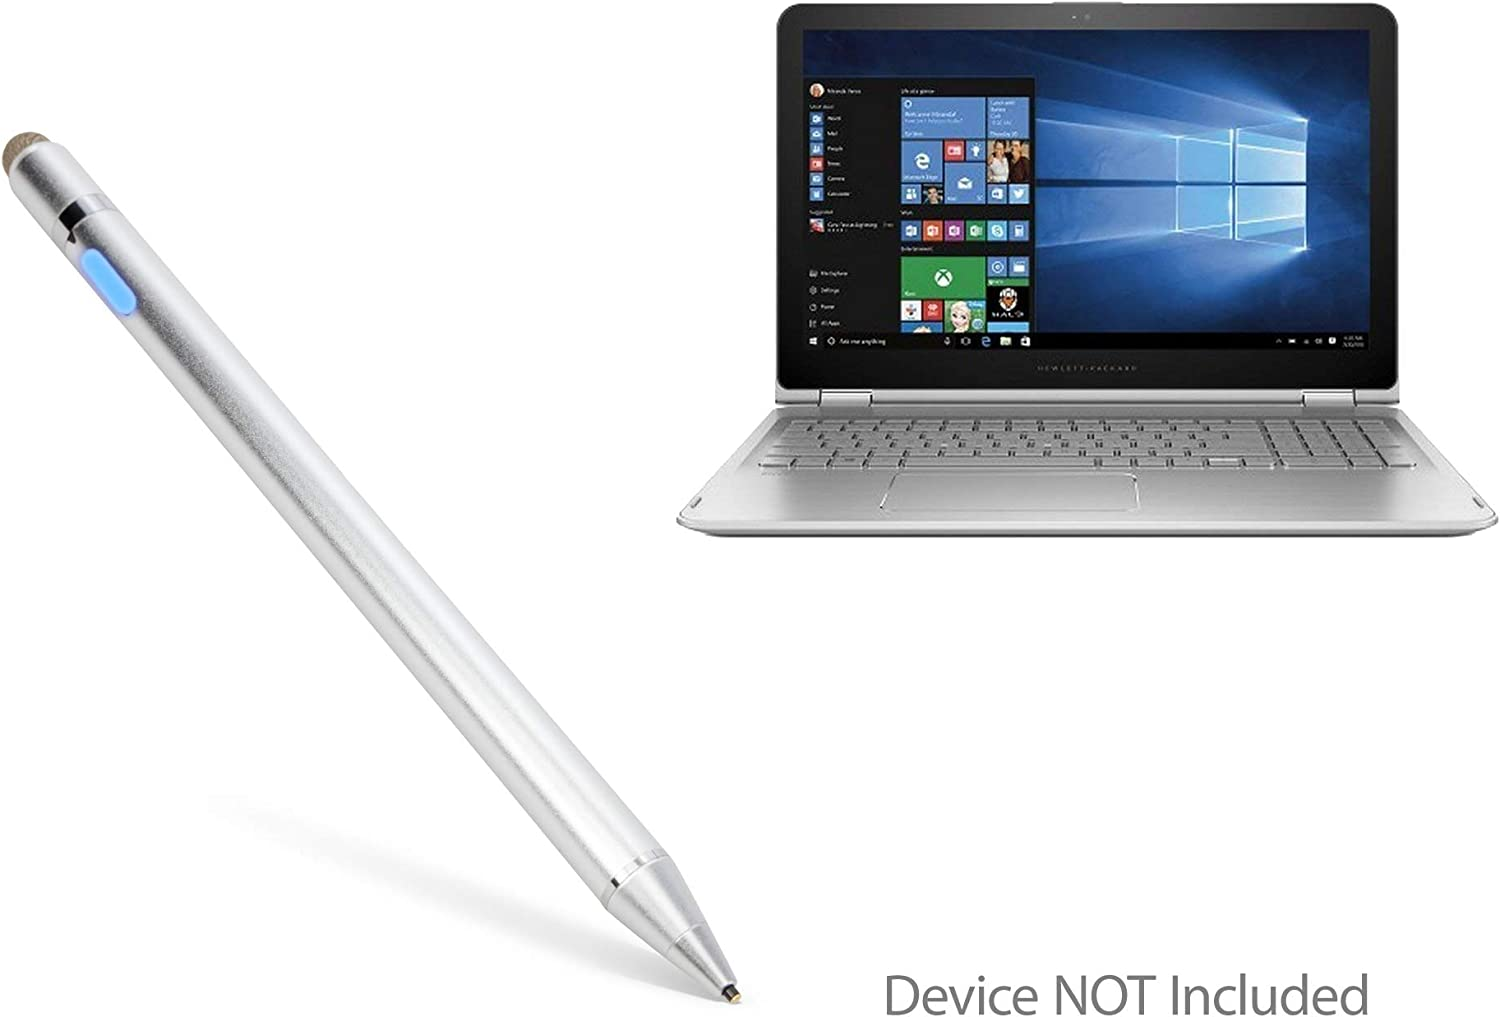 "HP Envy x360 Convertible 2-in-1 Laptop (15.6"") Stylus Pen, BoxWave [AccuPoint Active Stylus] Electronic Stylus with Ultra Fine Tip for HP Envy x360 Convertible 2-in-1 Laptop (15.6"") - Metallic Silver"